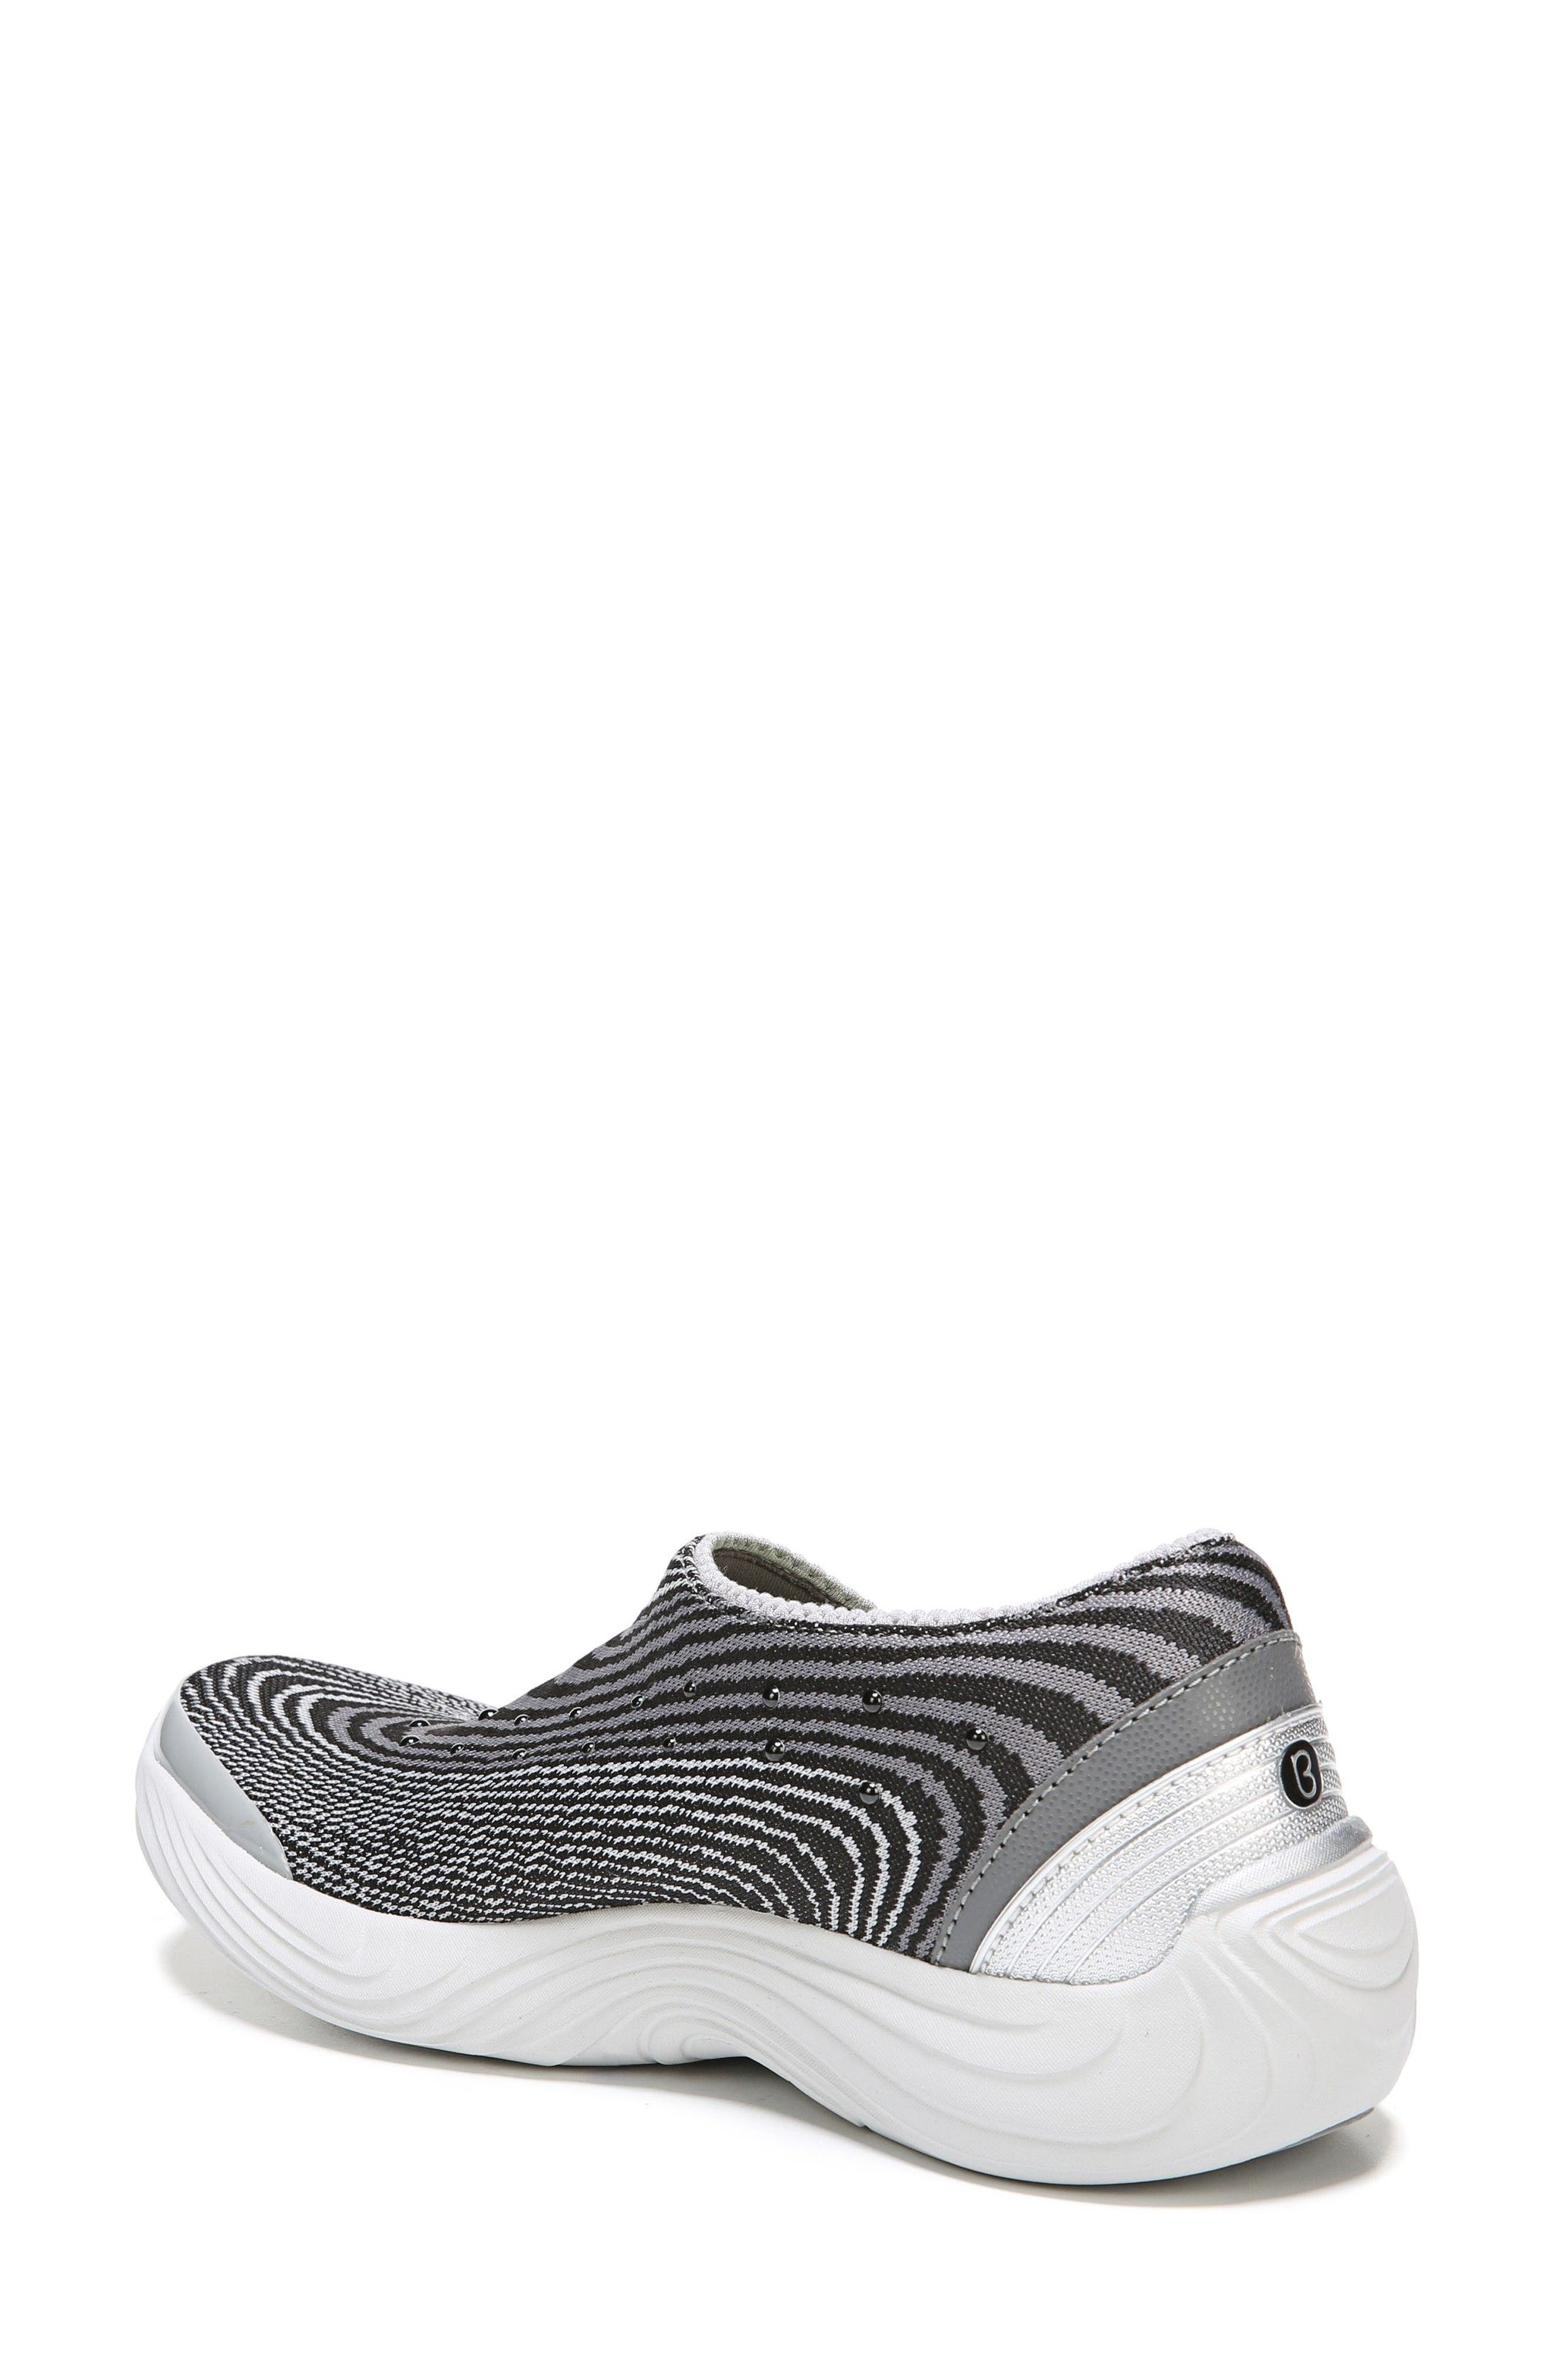 Alternate Image 2  - BZees Tiger Slip-On Sneaker (Women)